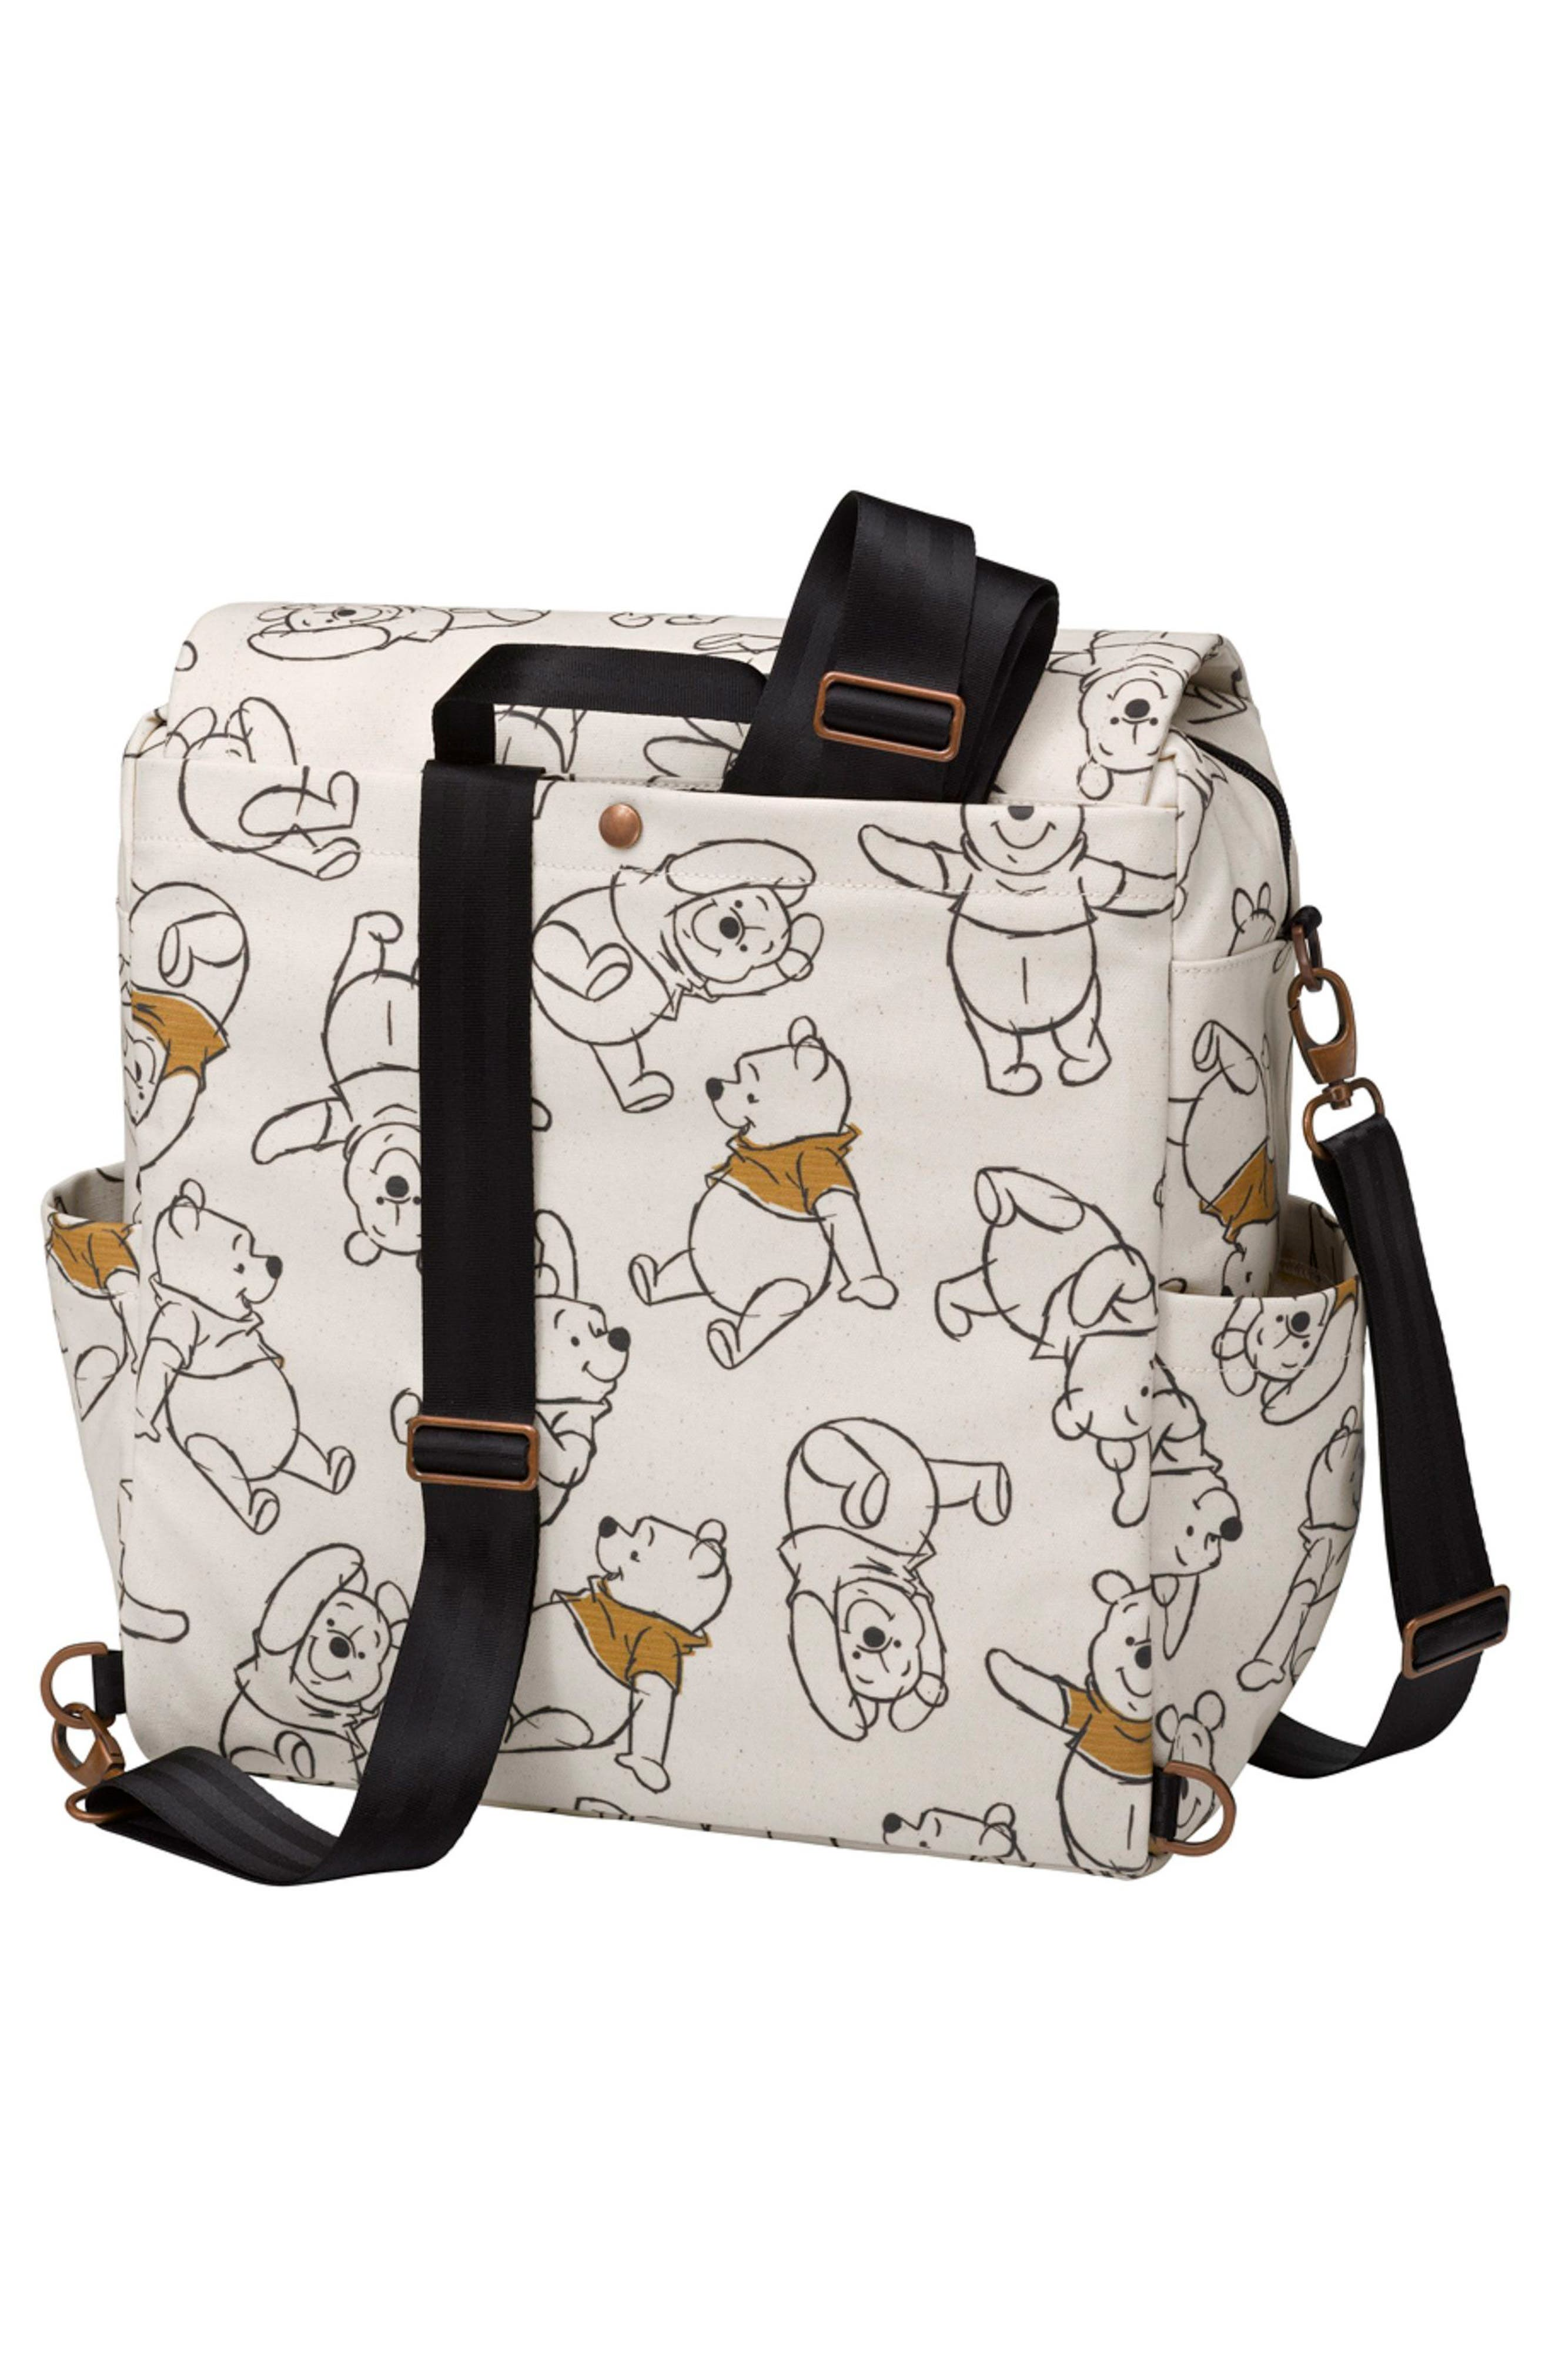 Boxy Backpack - Disney Diaper Bag,                             Alternate thumbnail 2, color,                             SKETCHBOOK WINNIE THE POOH